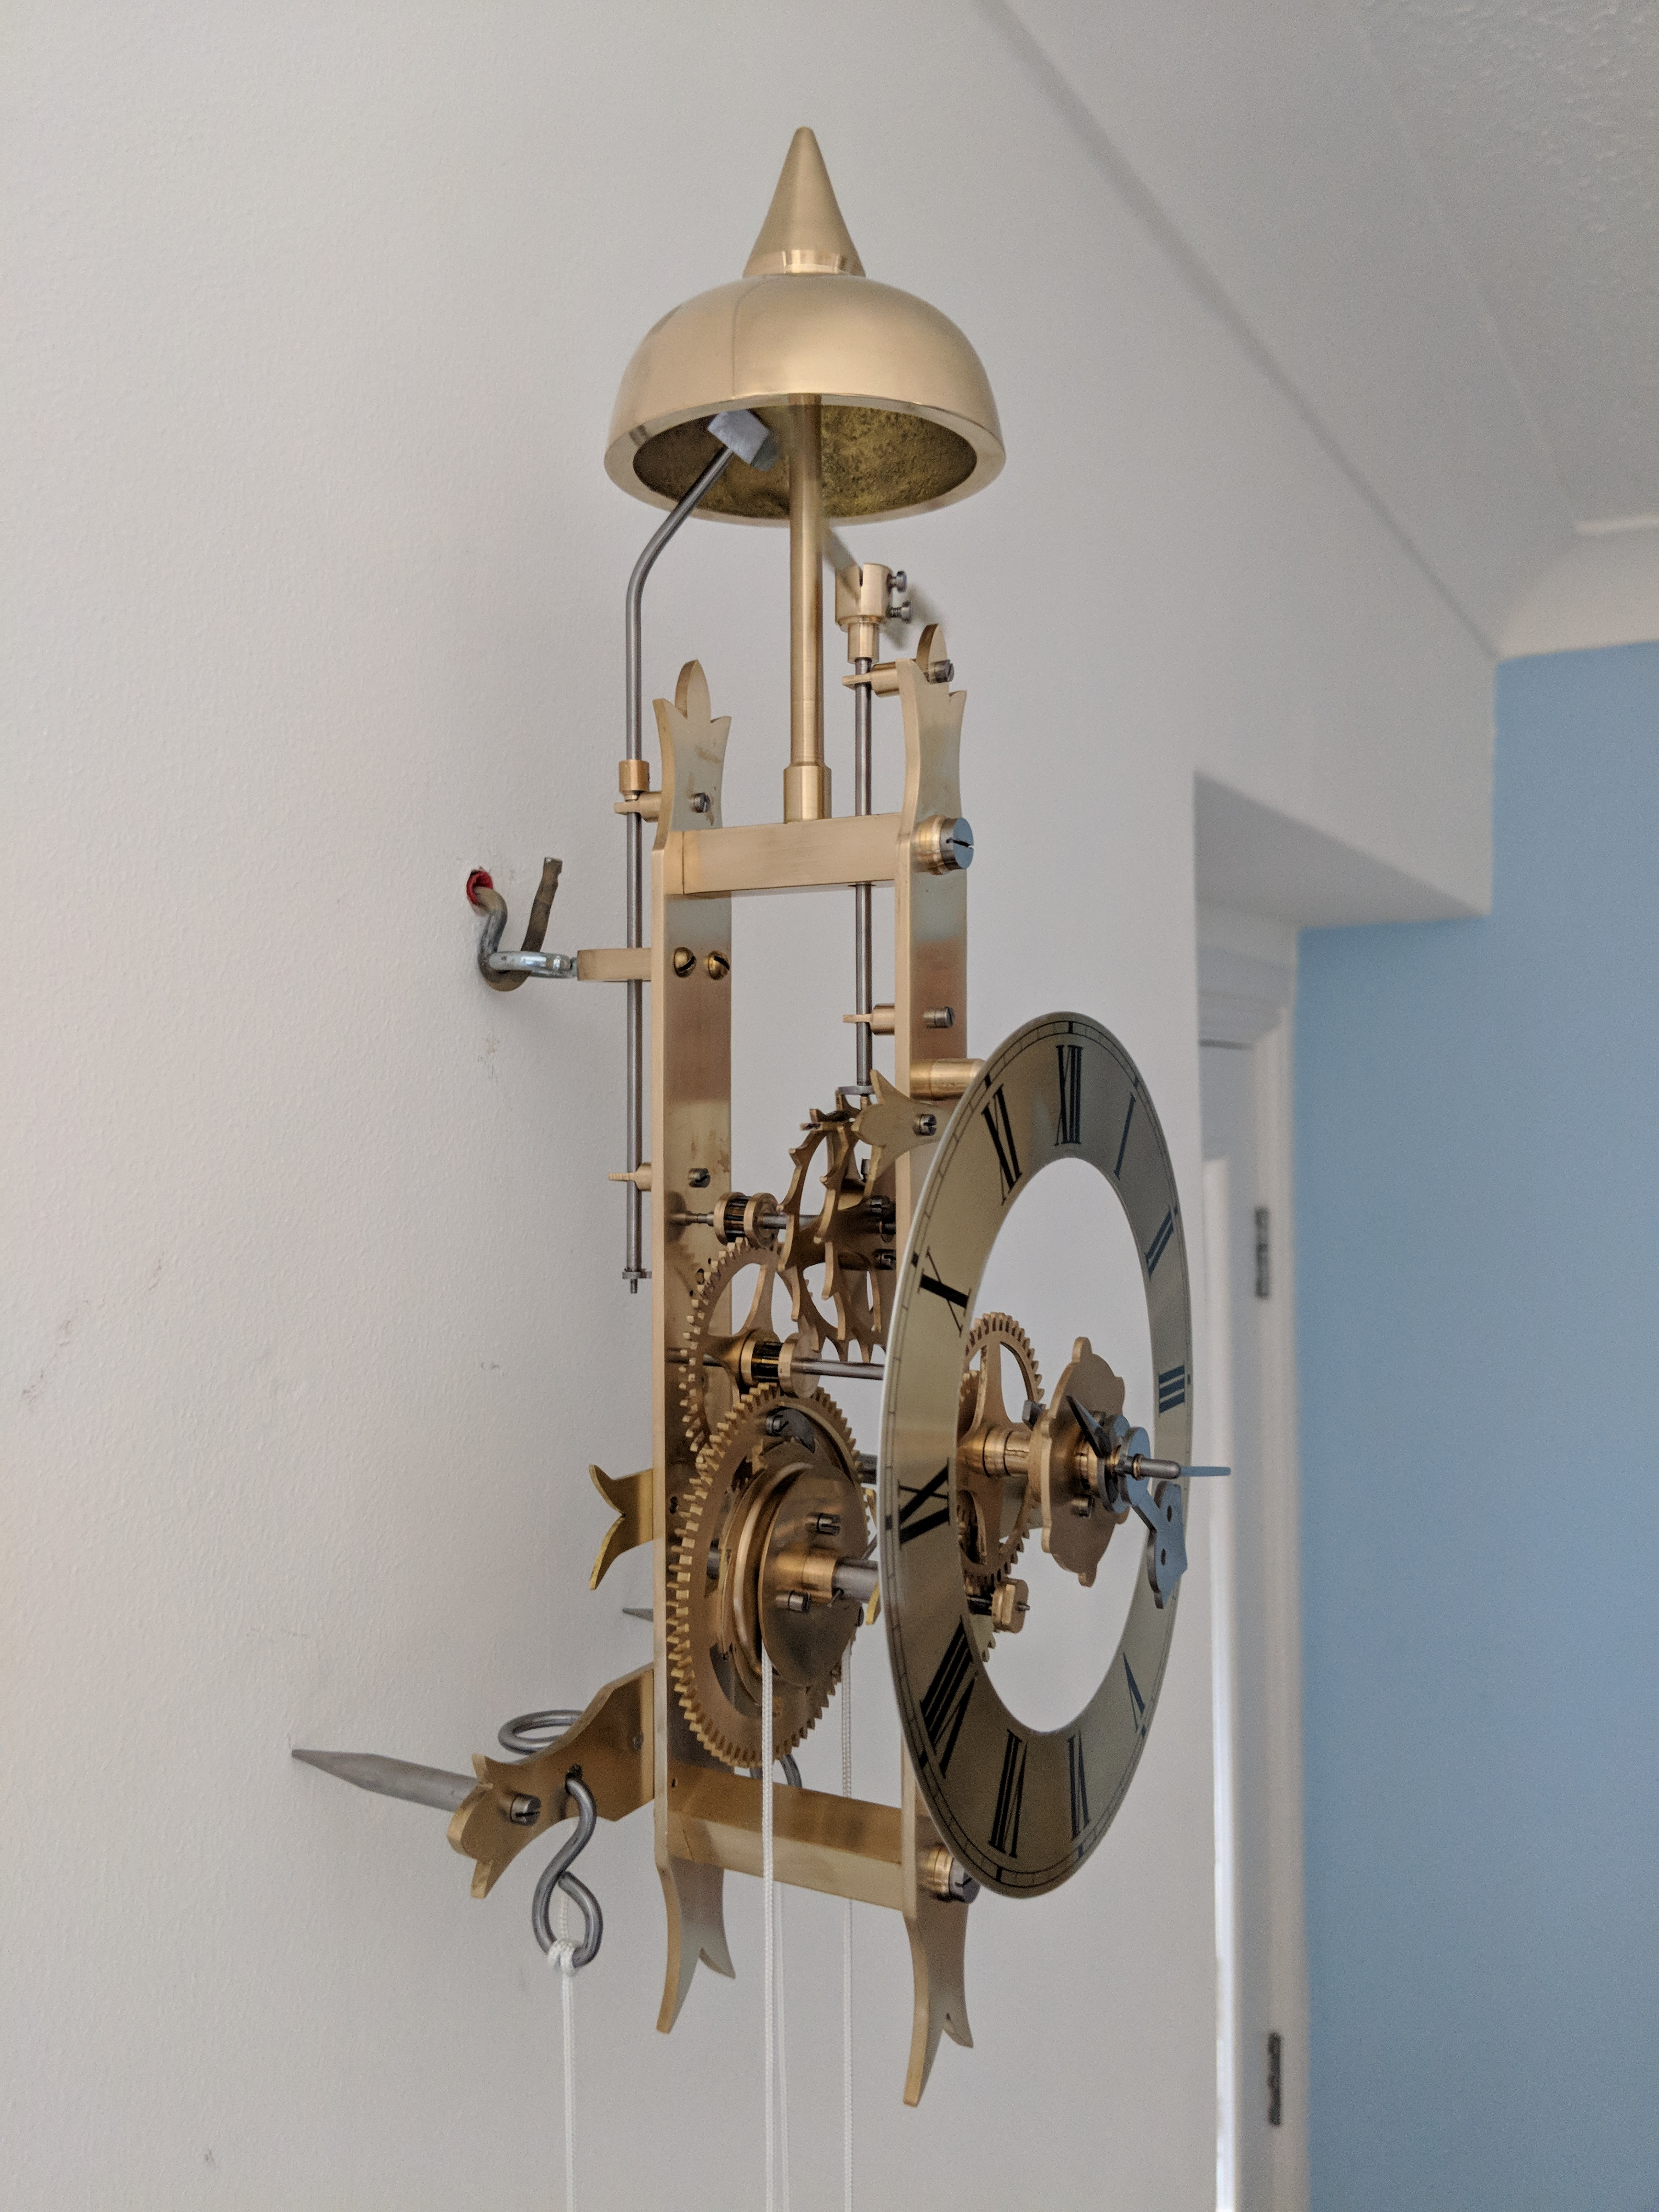 Picture of Making a Wall Hanging Brass Mechanical Alarm Clock in the Home Machine Shop